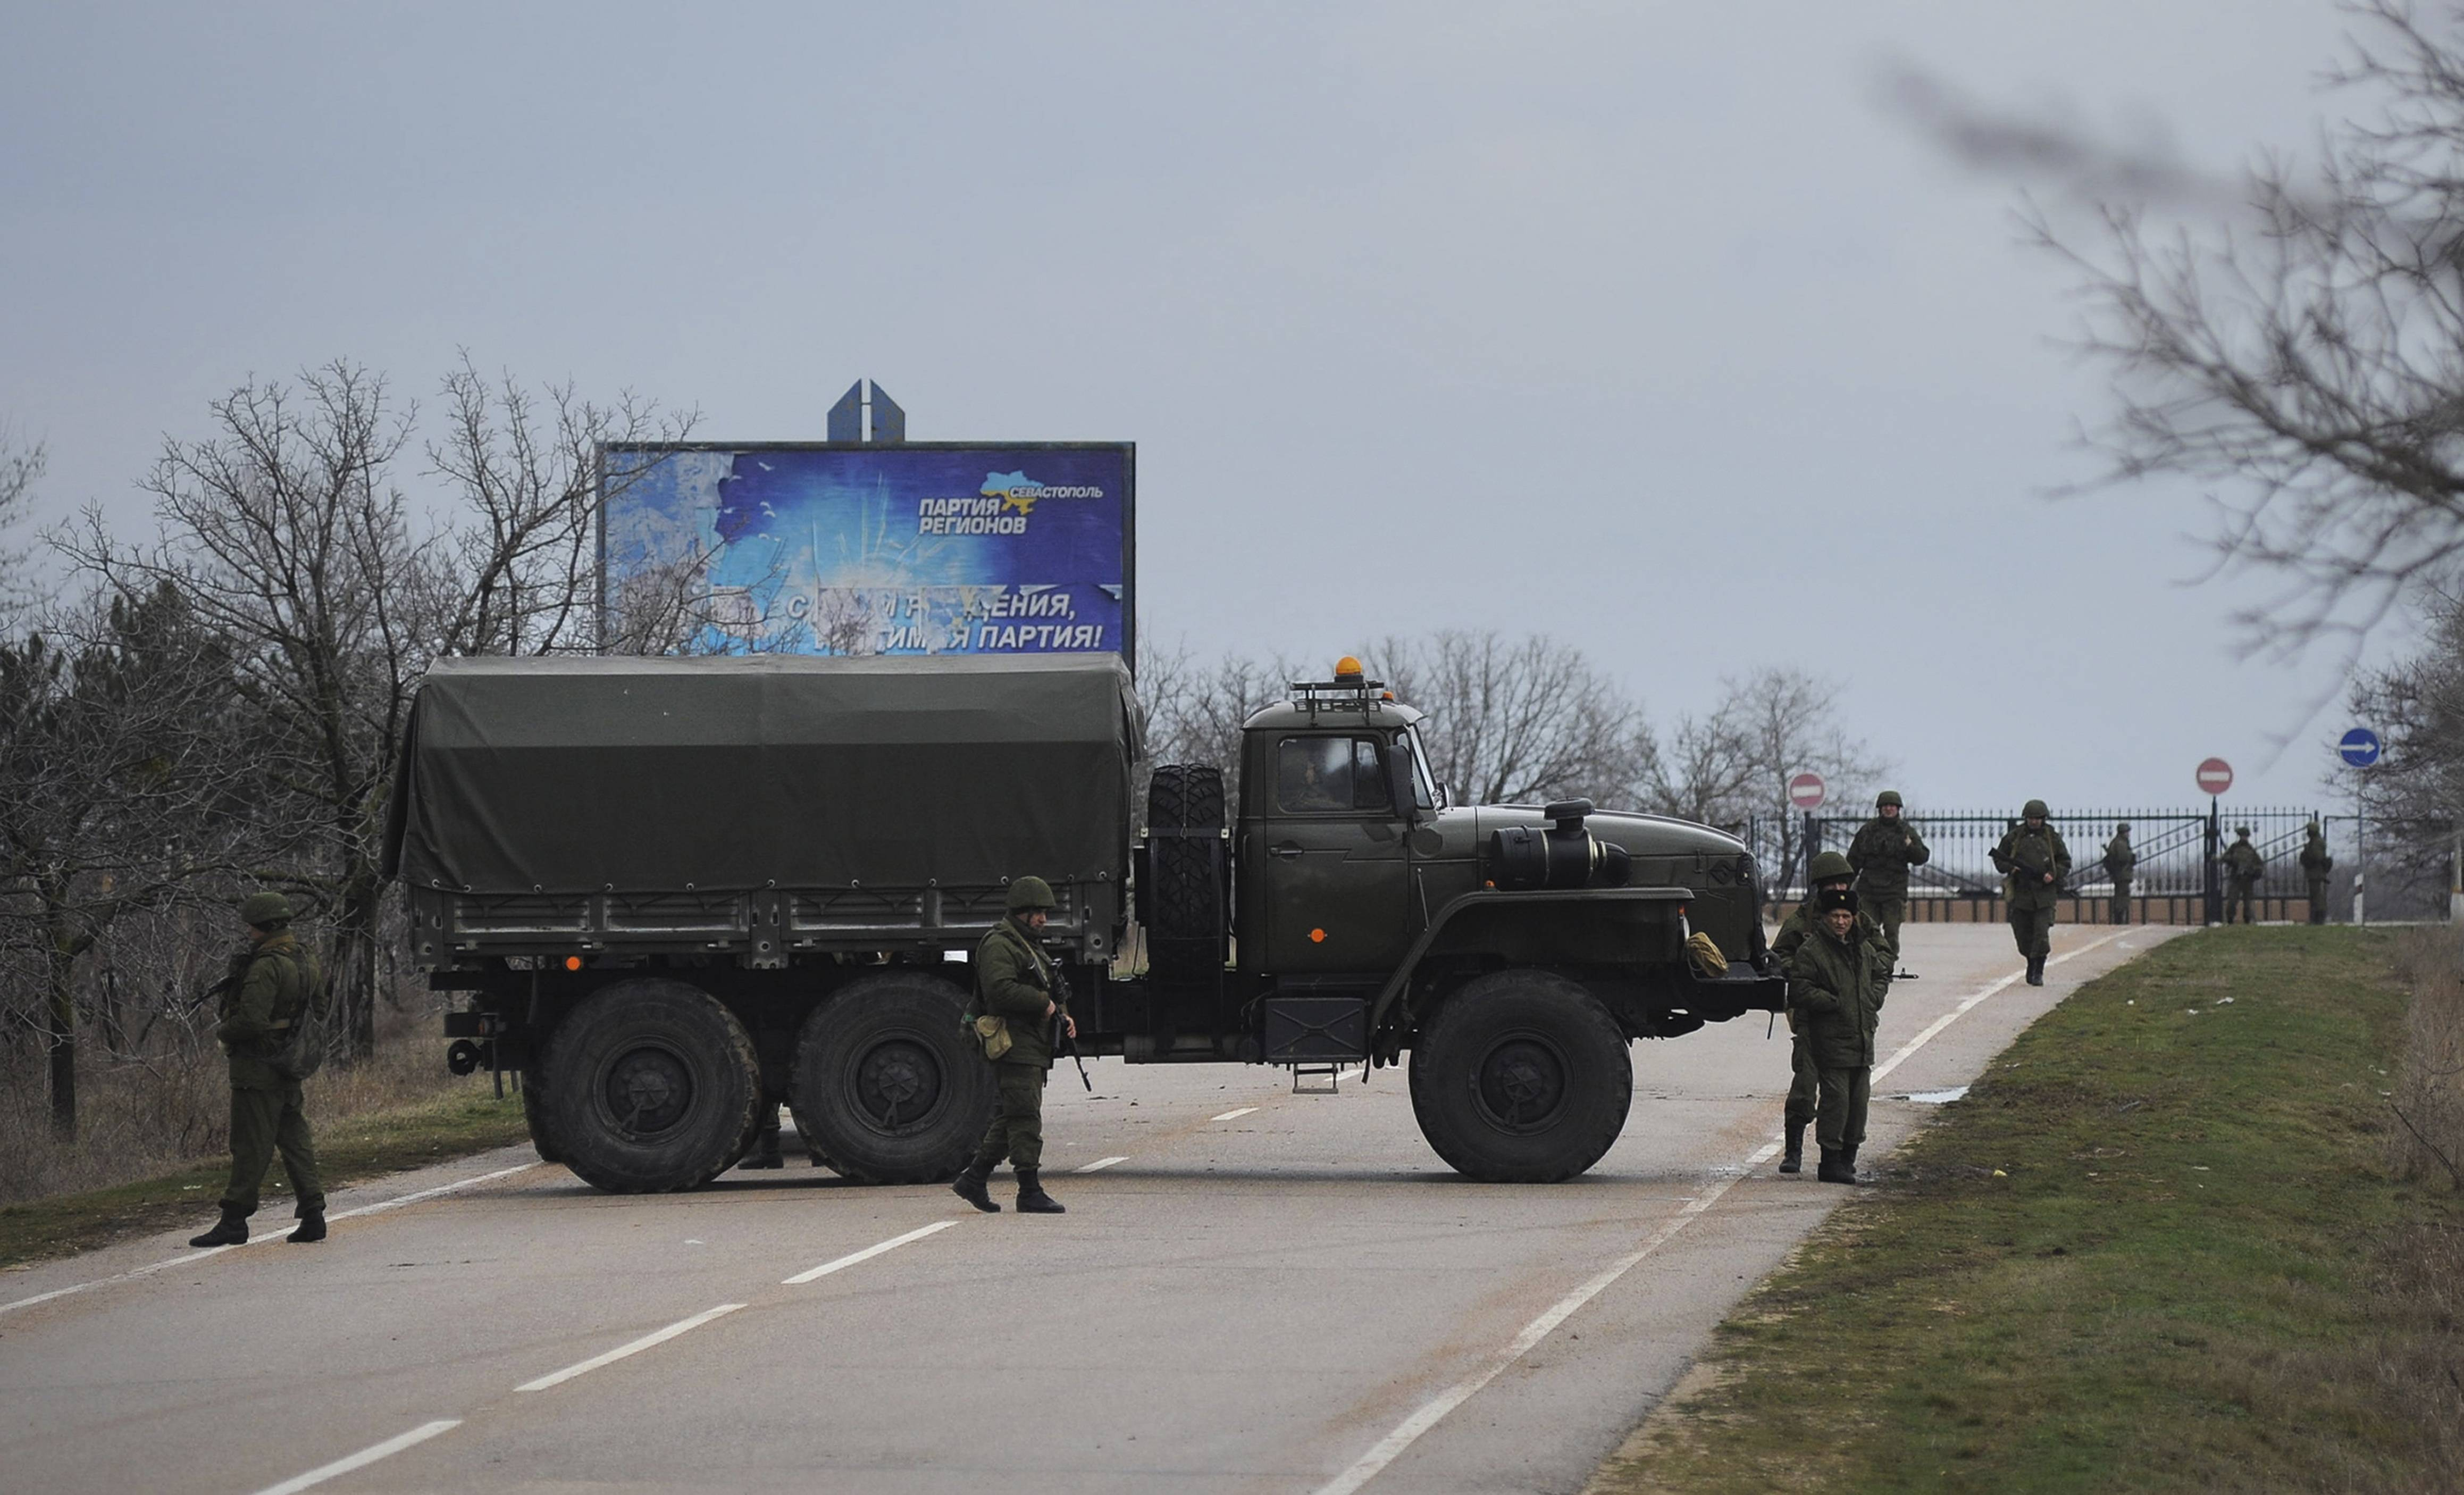 Russian troops Friday block the road toward the military airport at the Black Sea port of Sevastopol in Crimea, Ukraine. Heightened security is evident with Russian military around Sevastopol, the location for Russia military bases, military airport and Naval Base, while unidentified armed men wearing uniforms without insignia were patrolling another airport serving the regional capital, Ukraine's new Interior Minister Arsen Avakov said on Friday.